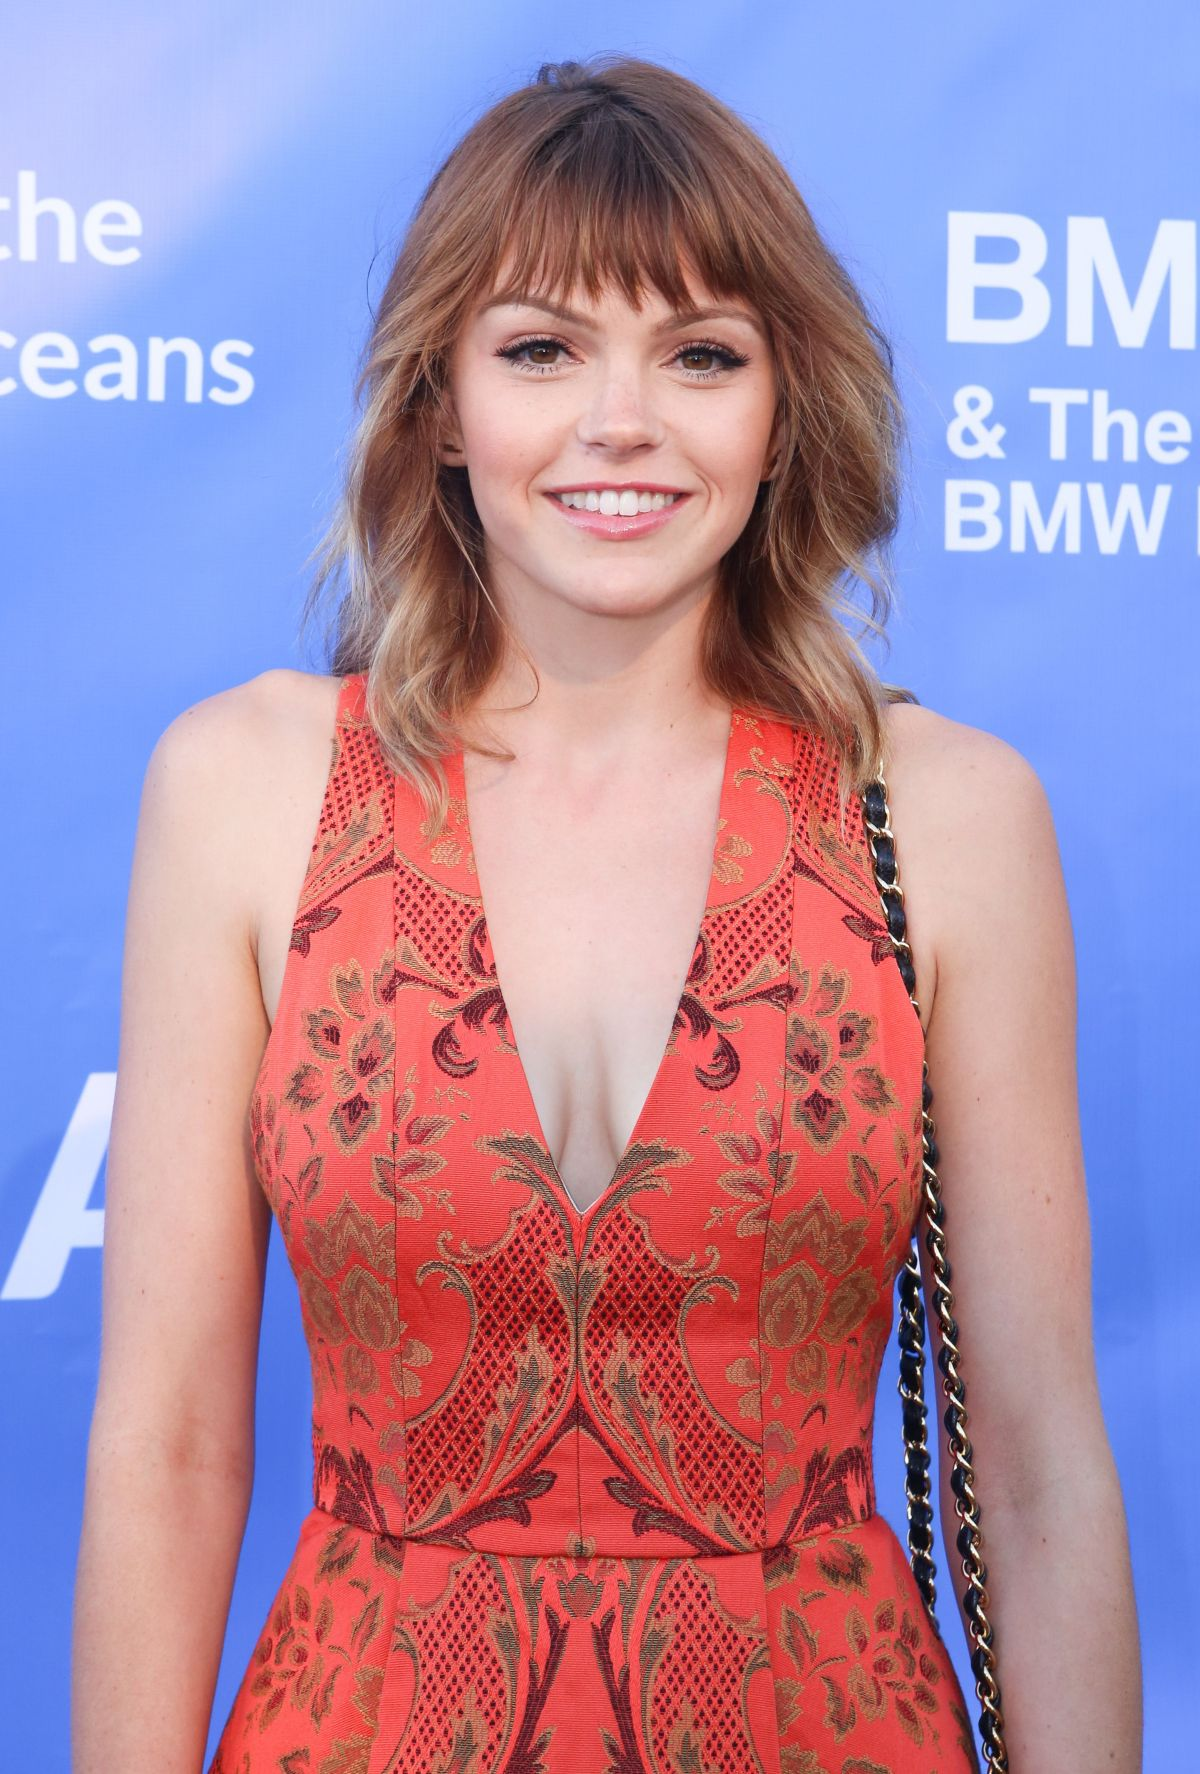 Pictures Aimee Teegarden nudes (41 photos), Sexy, Cleavage, Selfie, underwear 2015